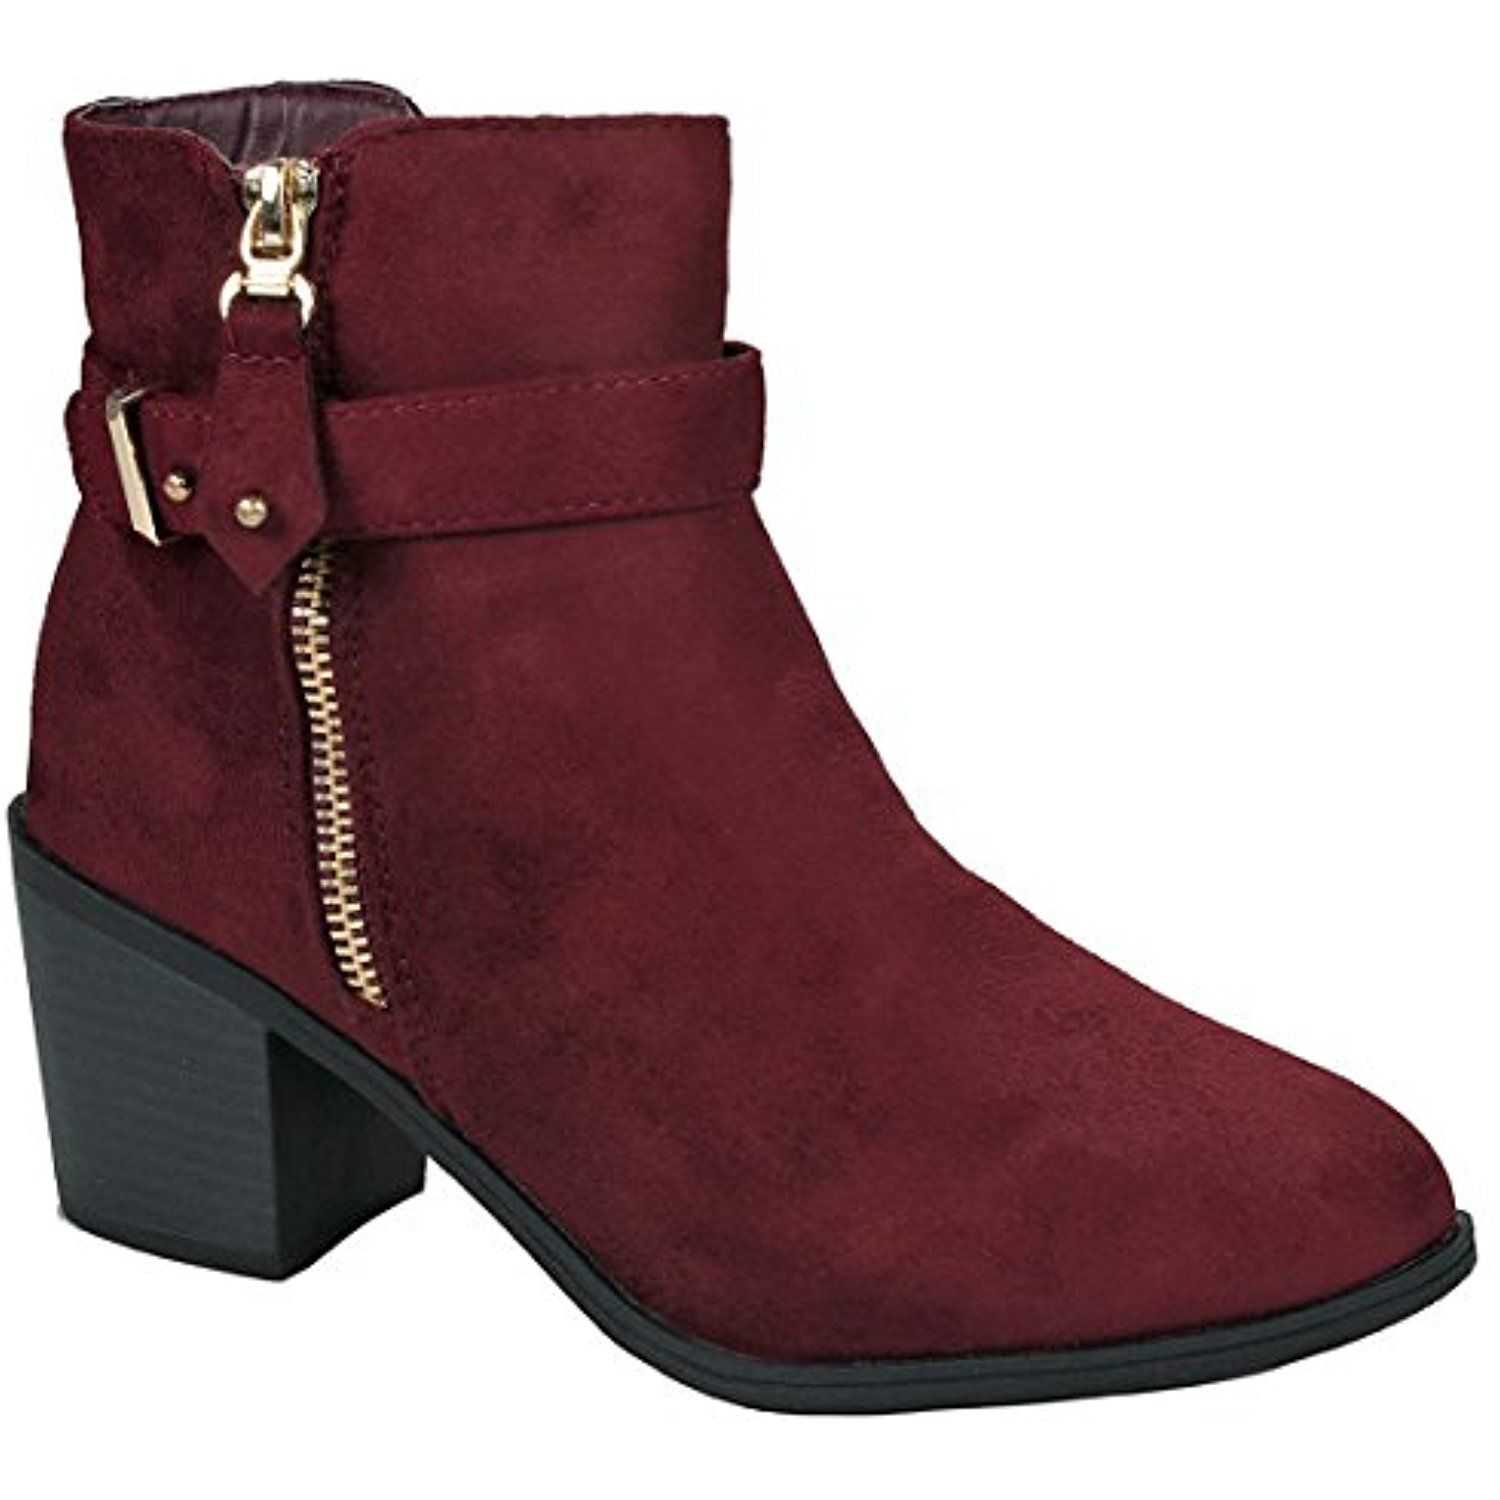 Womens Chunky Heel Almond Toe Faux Suede Ankle Booties